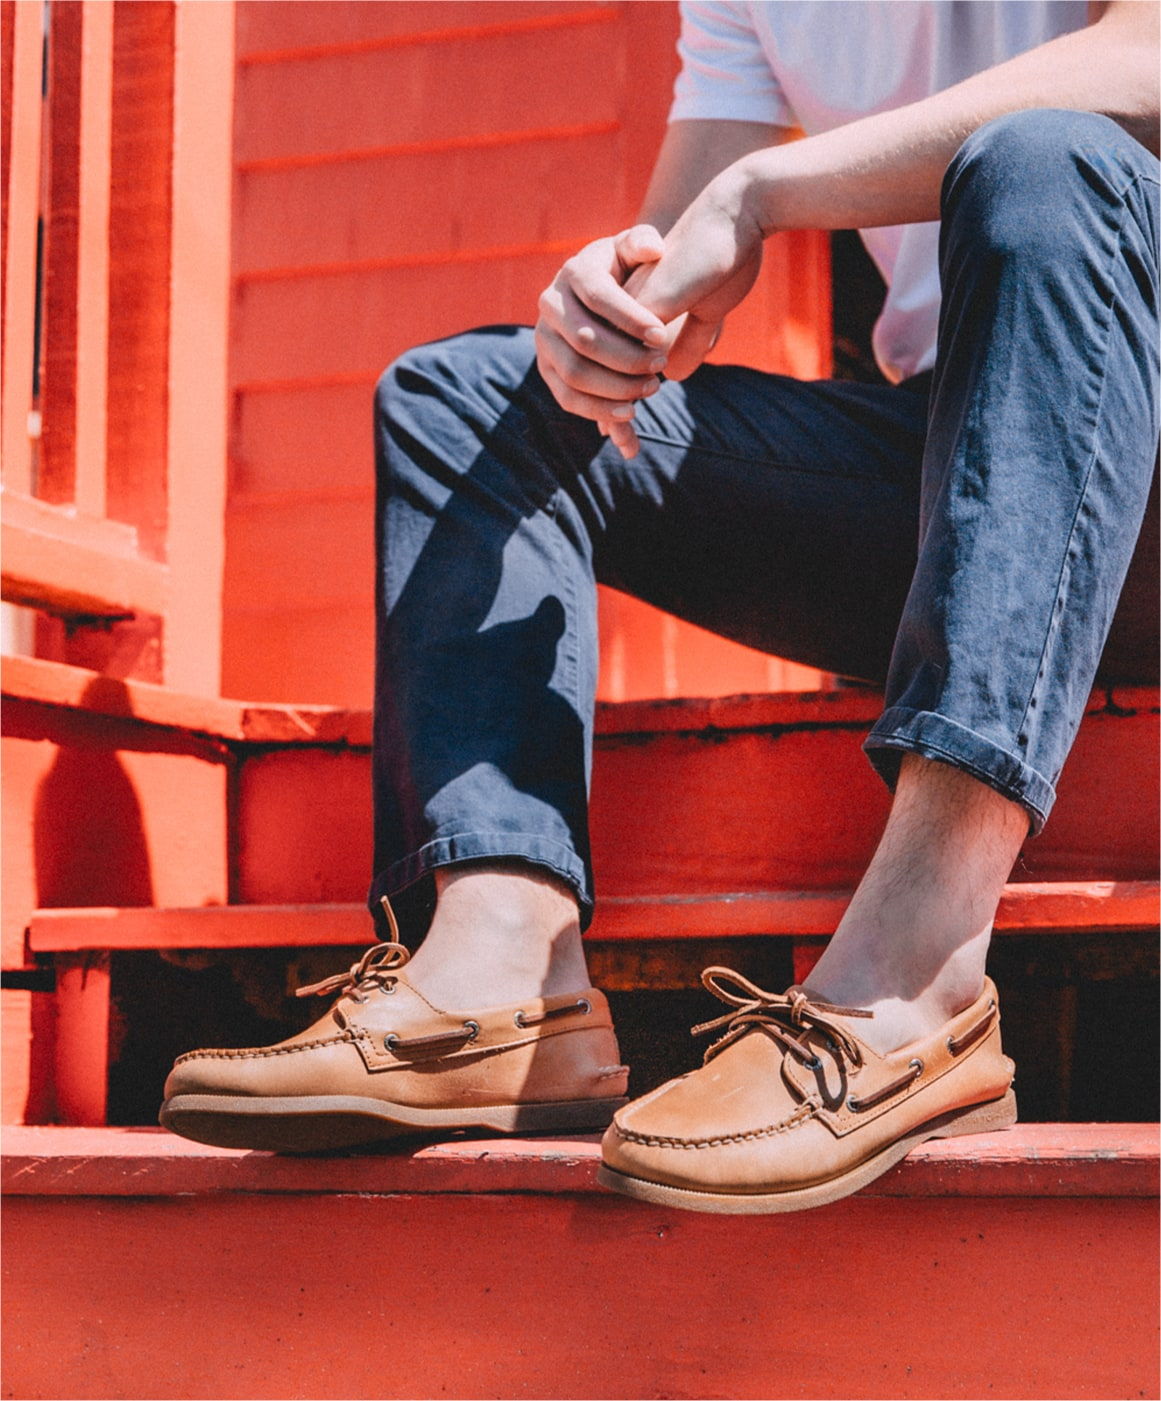 Man sitting on steps, wearing Sperry boat shoes.